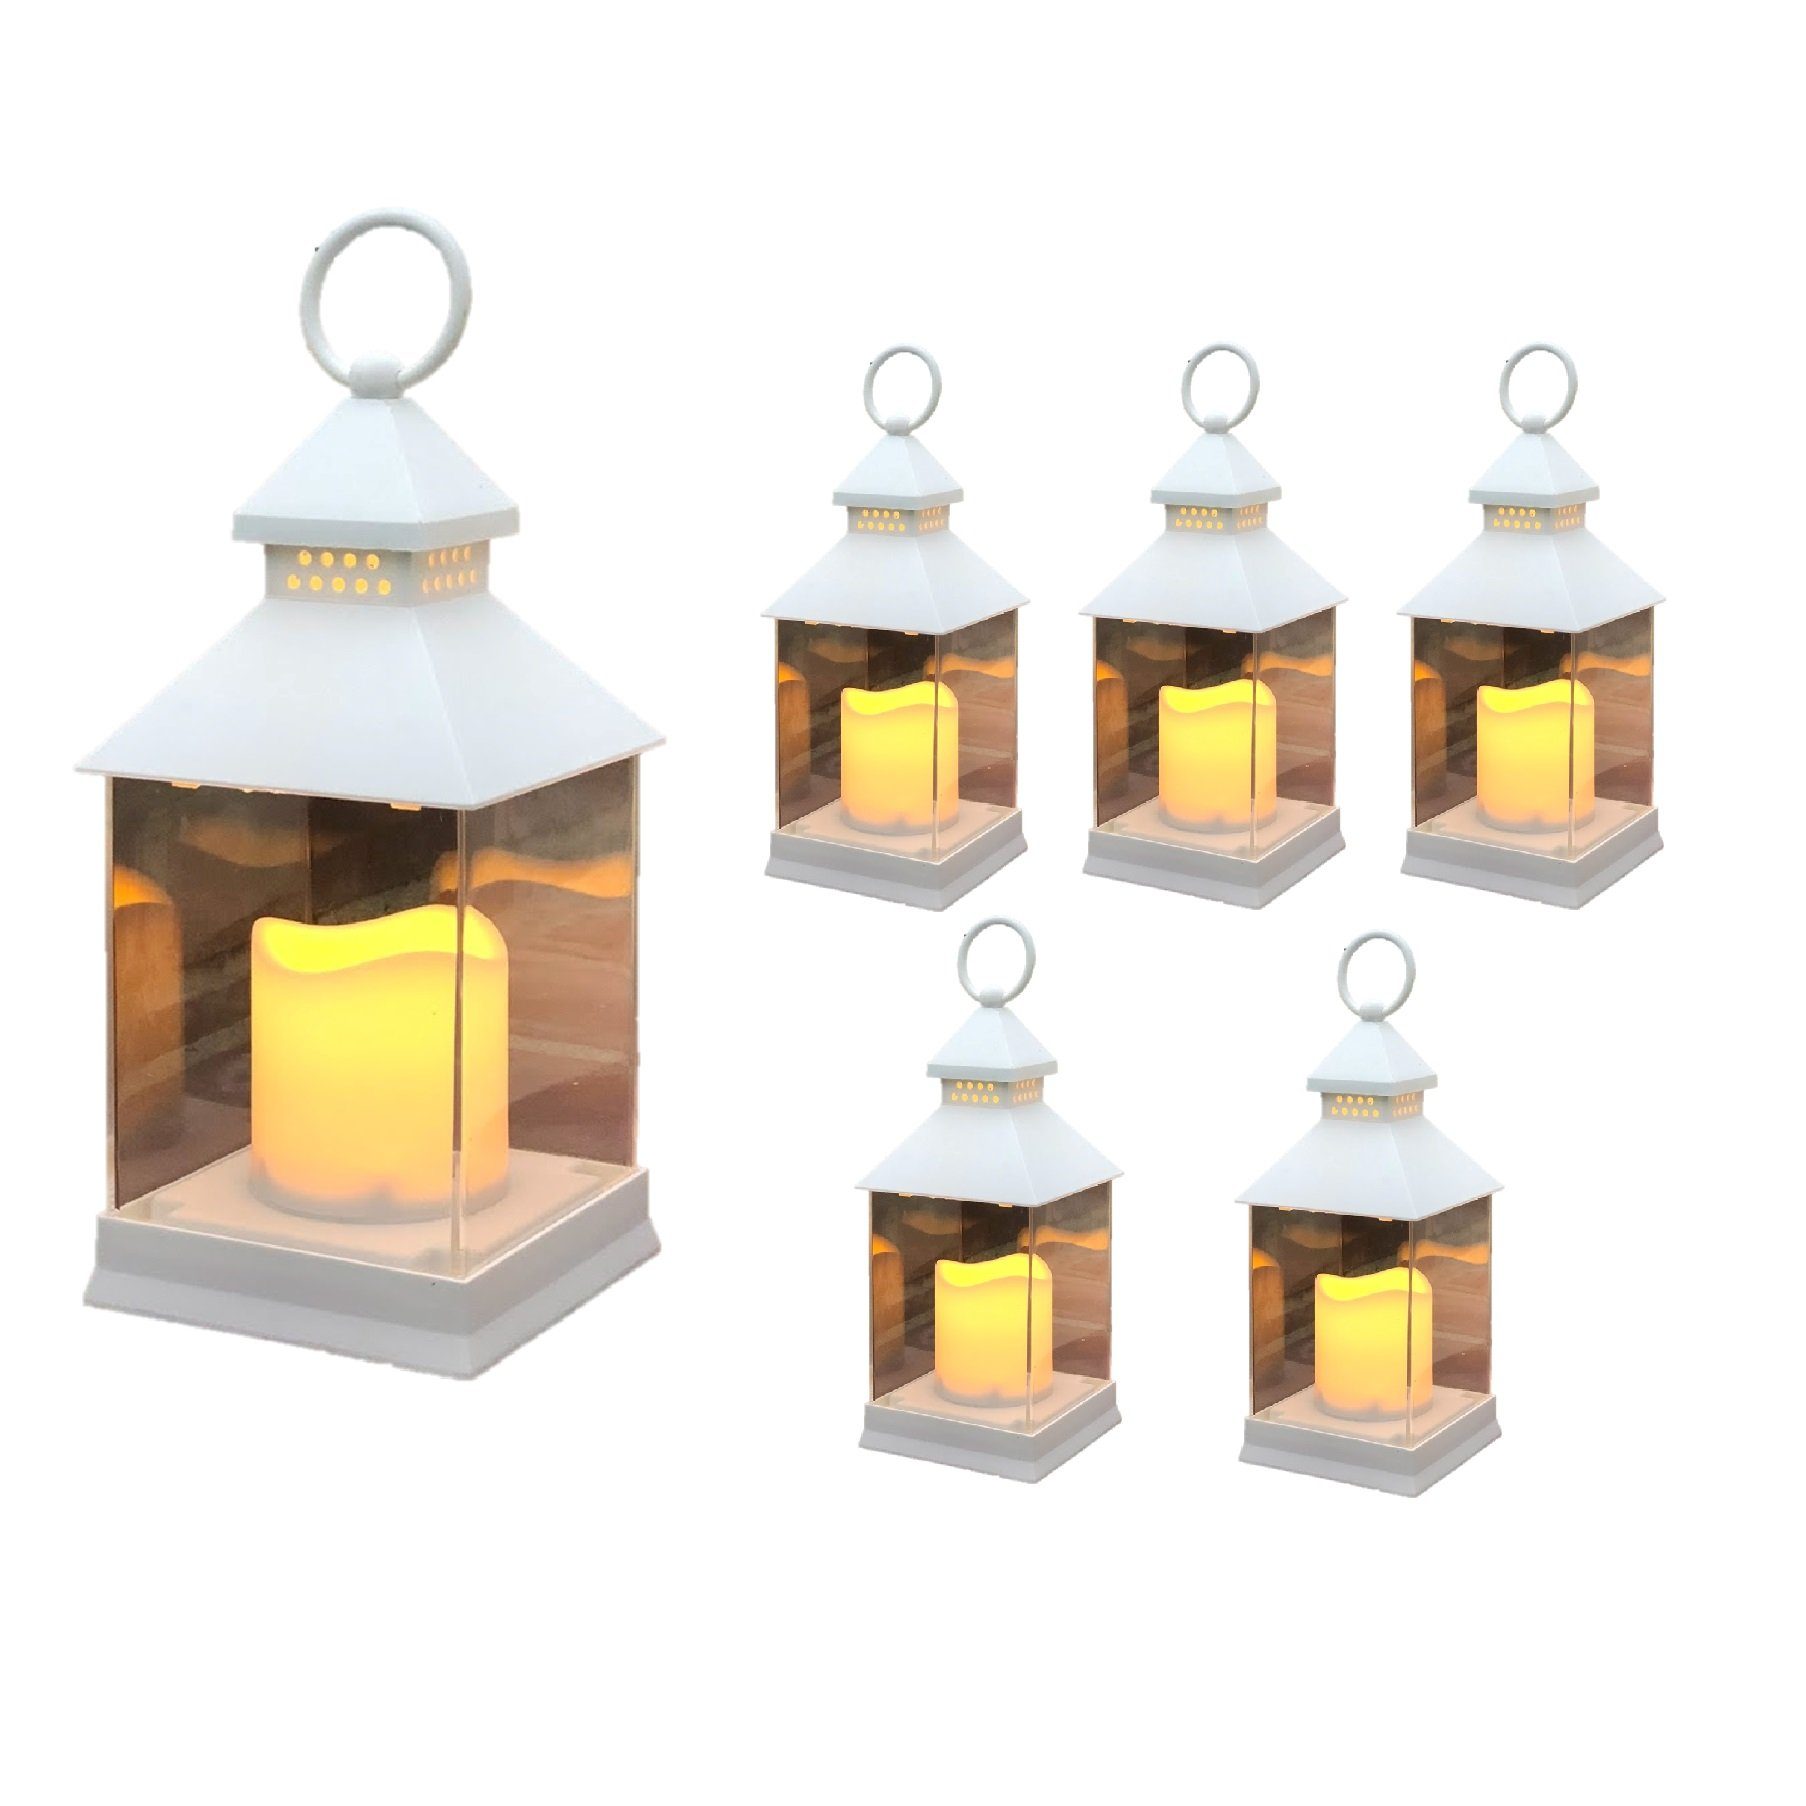 Just In Time for Spring {6 Pc Set} 10'' Decorative Lanterns With Flameless LED Lighted Candle - 5 Hr Timer Modern Look Indoor Outdoor for Home, Garden, Patio, Party Lights, Weddings - White